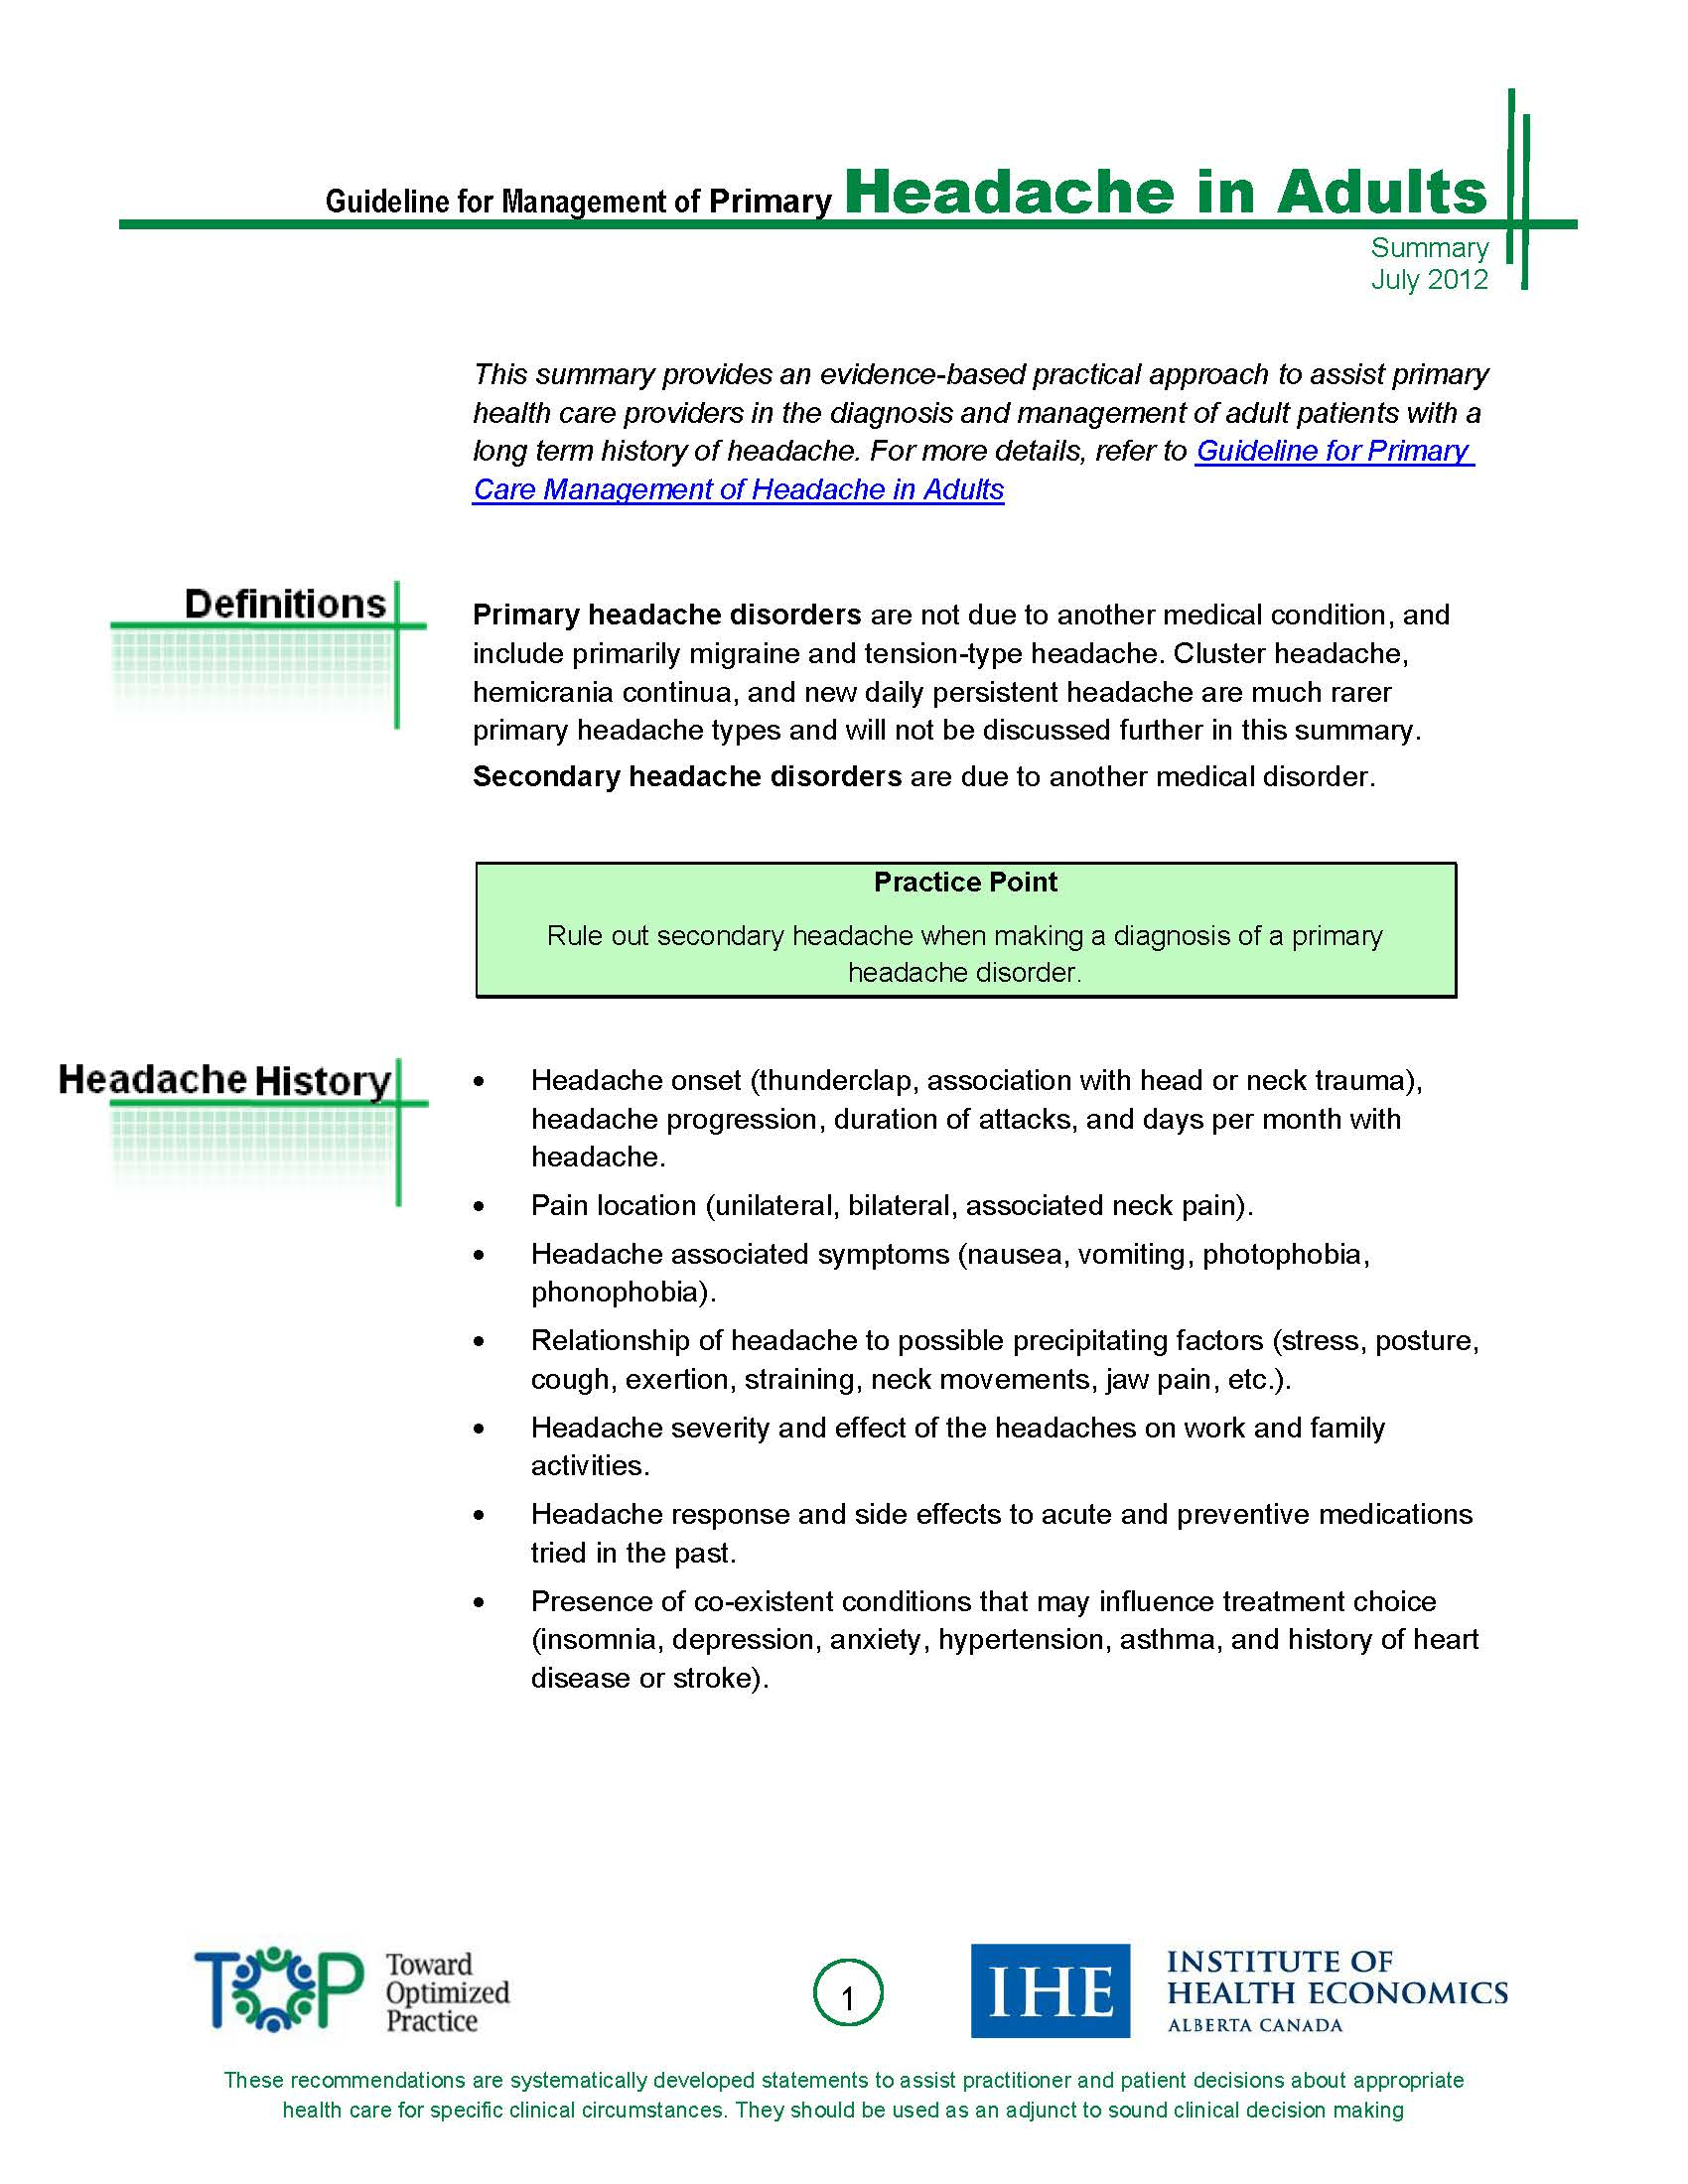 Summary Guideline for Management of Primary Headache in Adults_Page_1.jpg